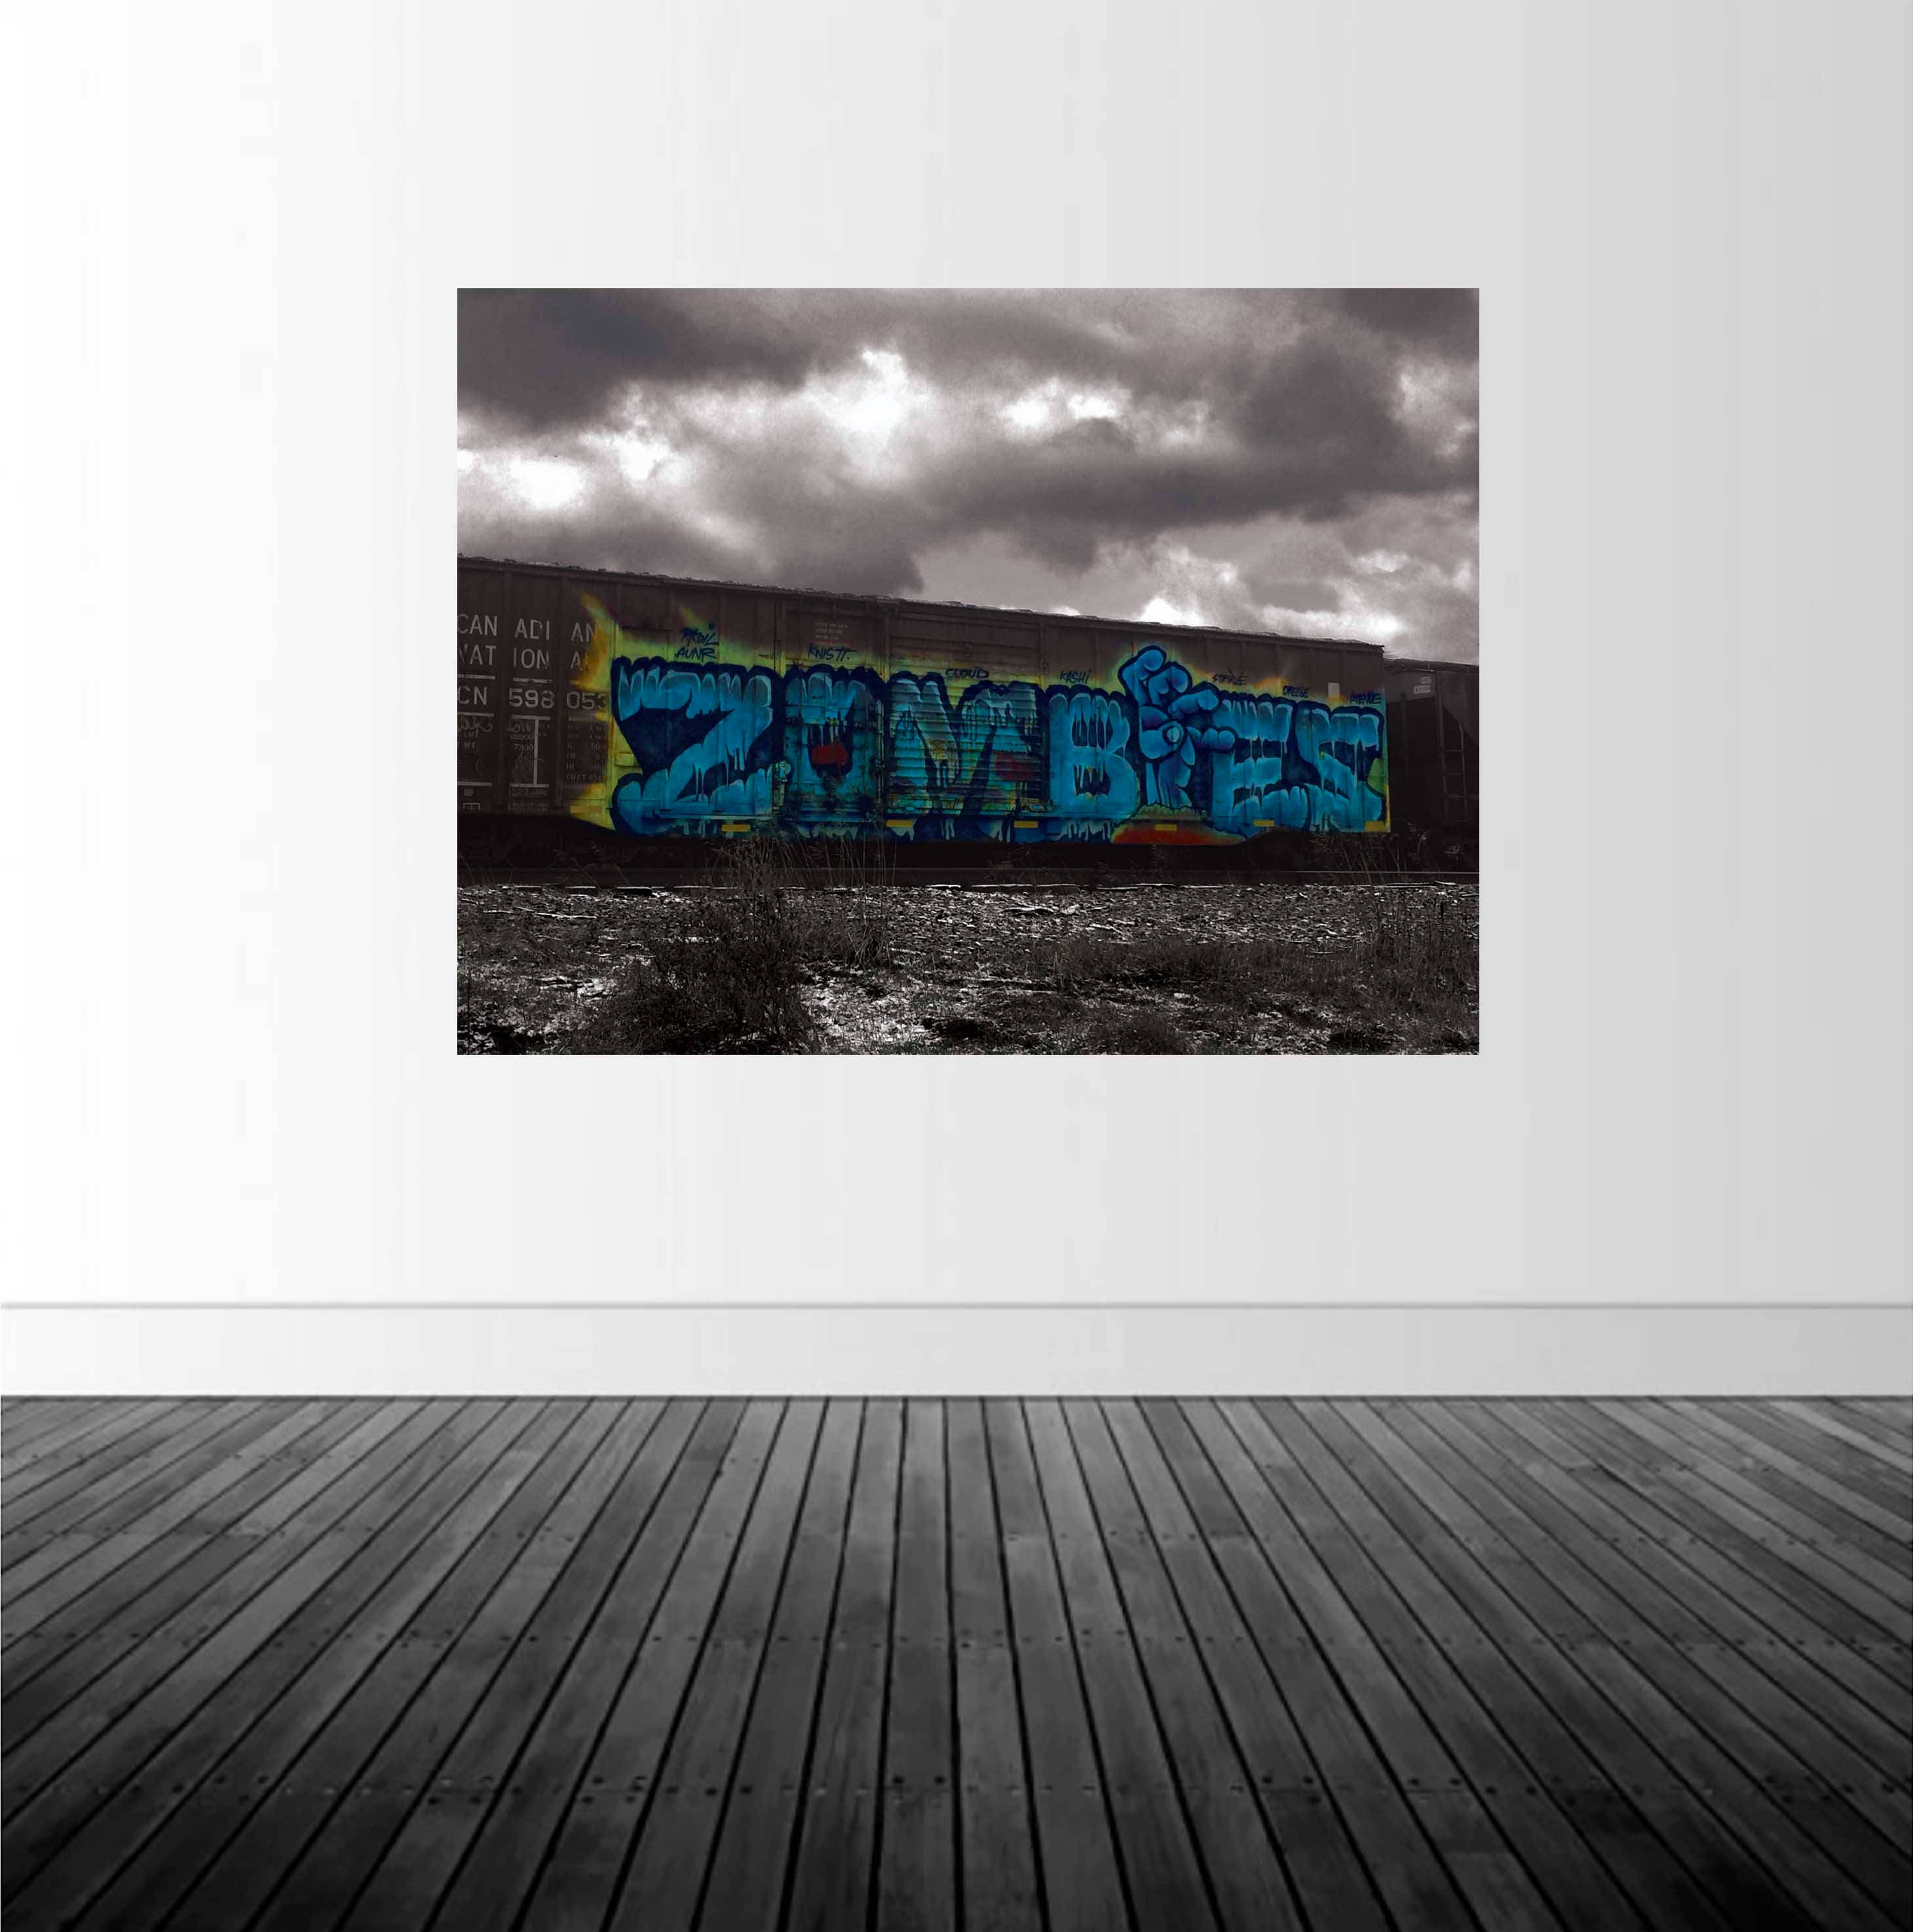 Graffiti Wall Decal, Train Wall Decal, Train Graffiti Decal, Vinyl Wall  Decal, Removable Decal, Zombie Decal, Zombie Graffiti, By Abby Smith